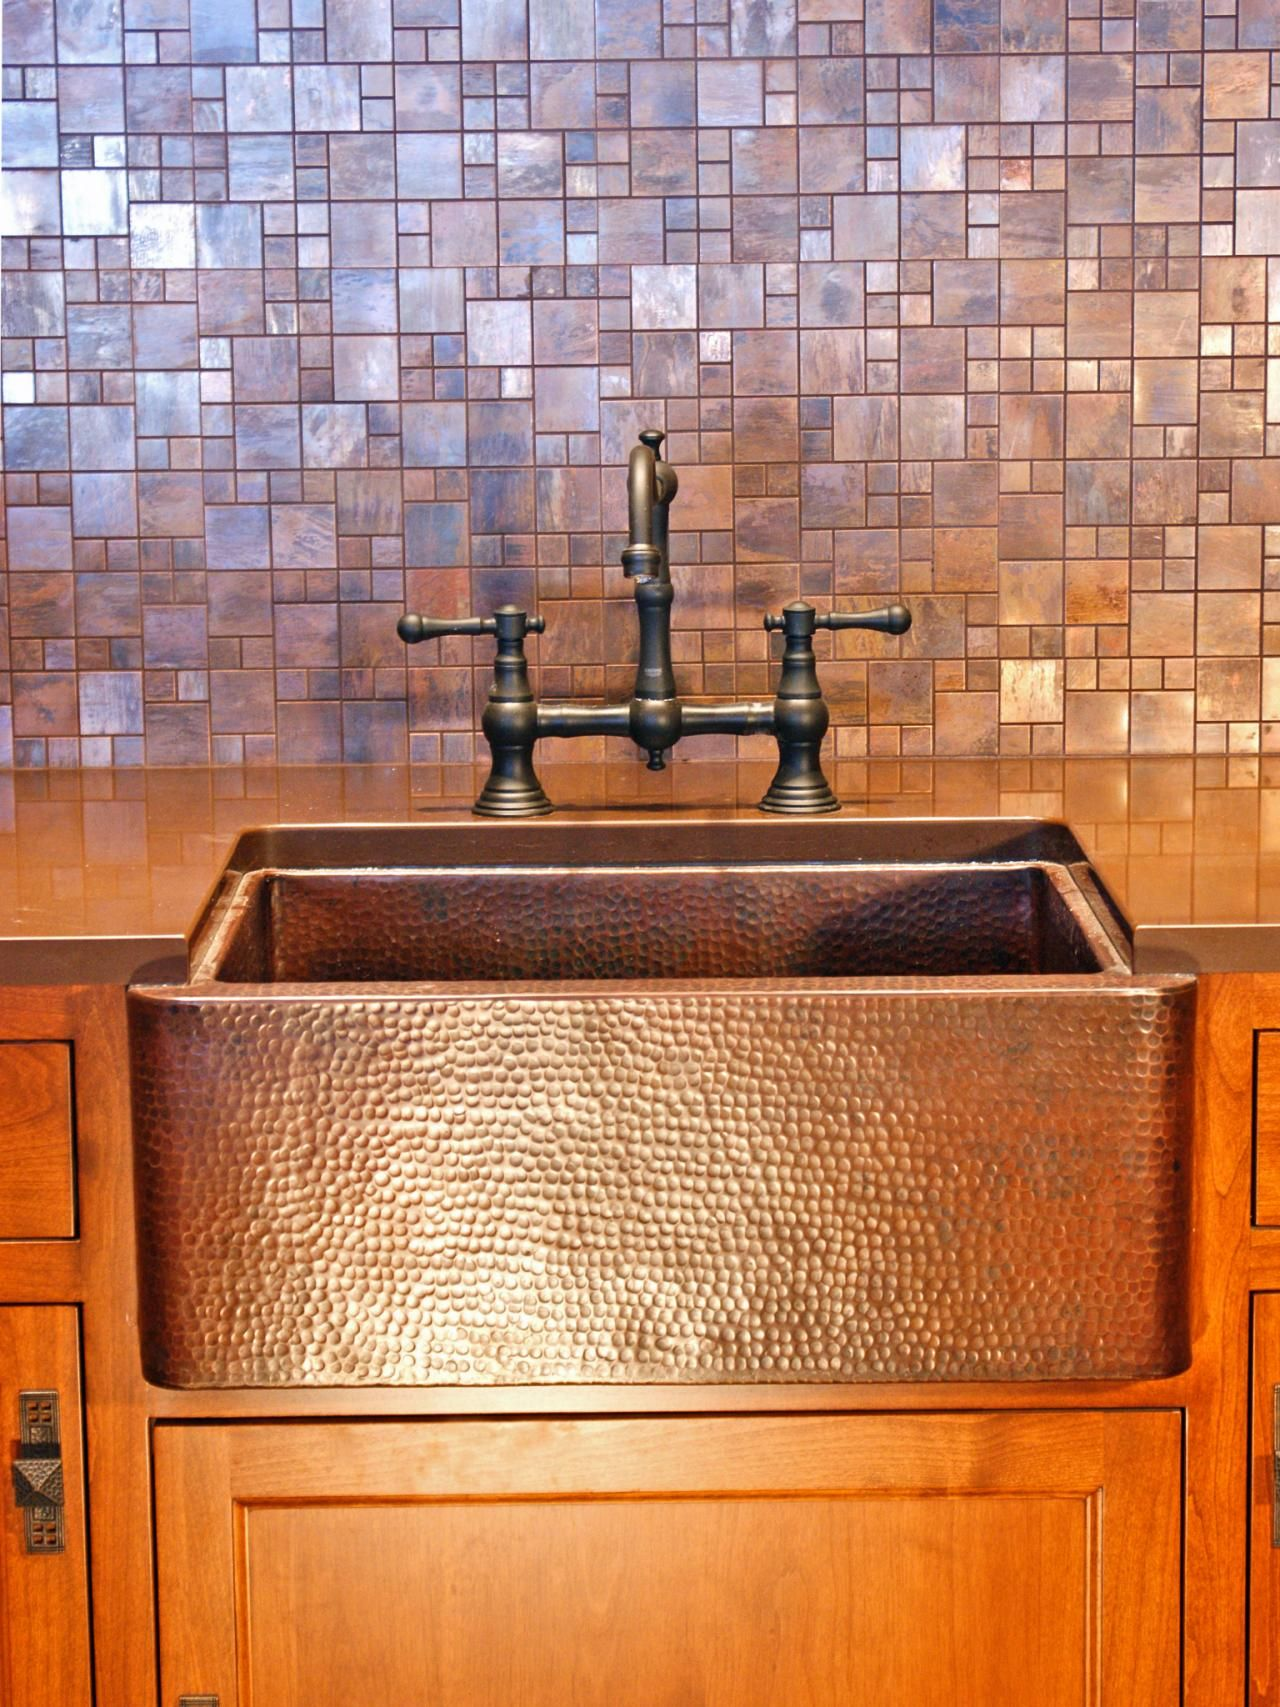 Ceramic Tile Backsplashes: Pictures, Ideas & Tips From